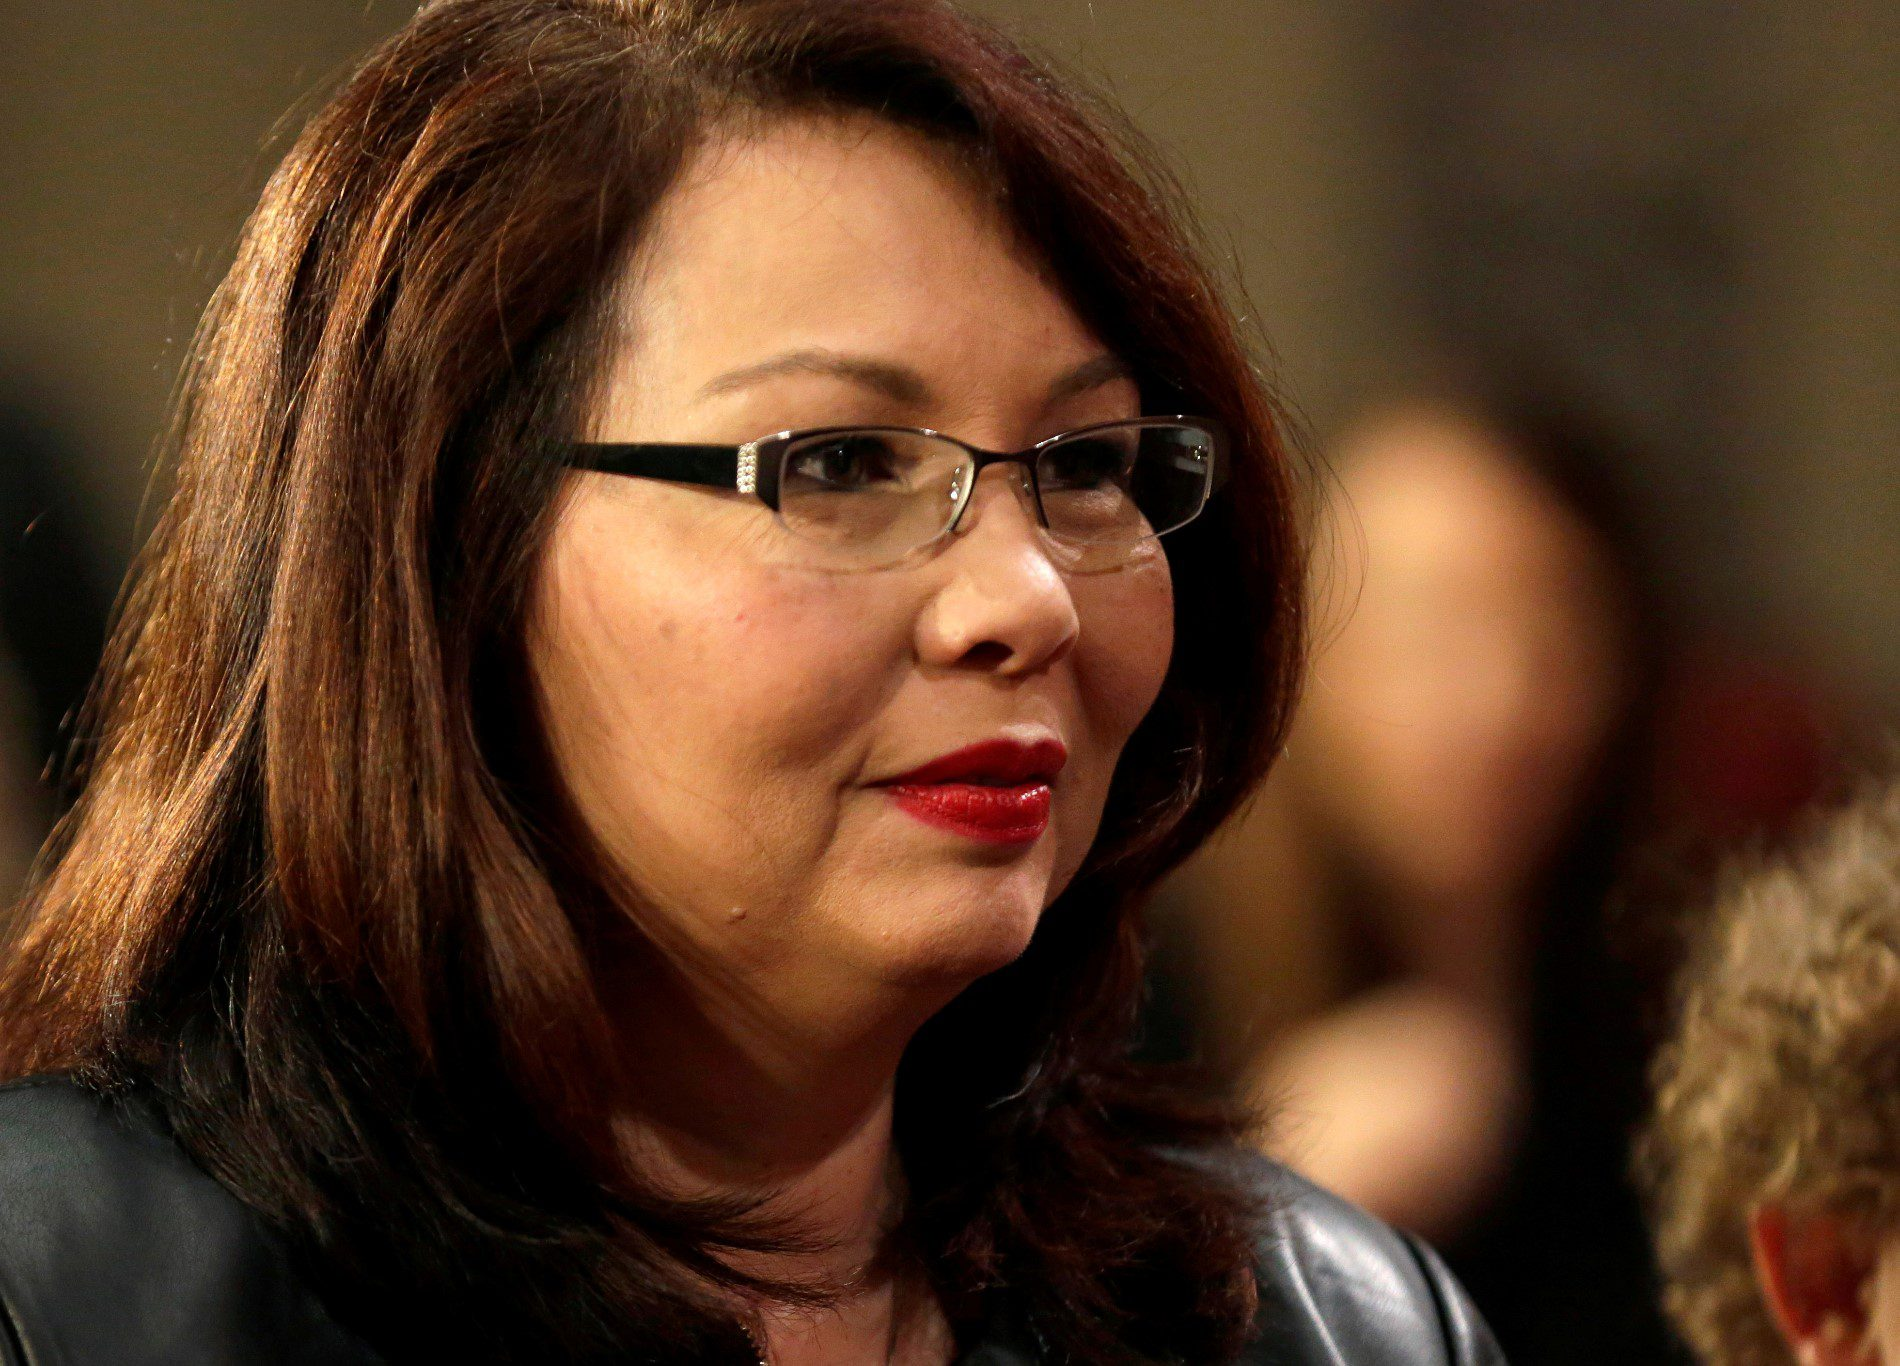 democrat-tammy-duckworth-hasn't-paid-property-tax-on-her-illinois-home-since-2015,-report-says